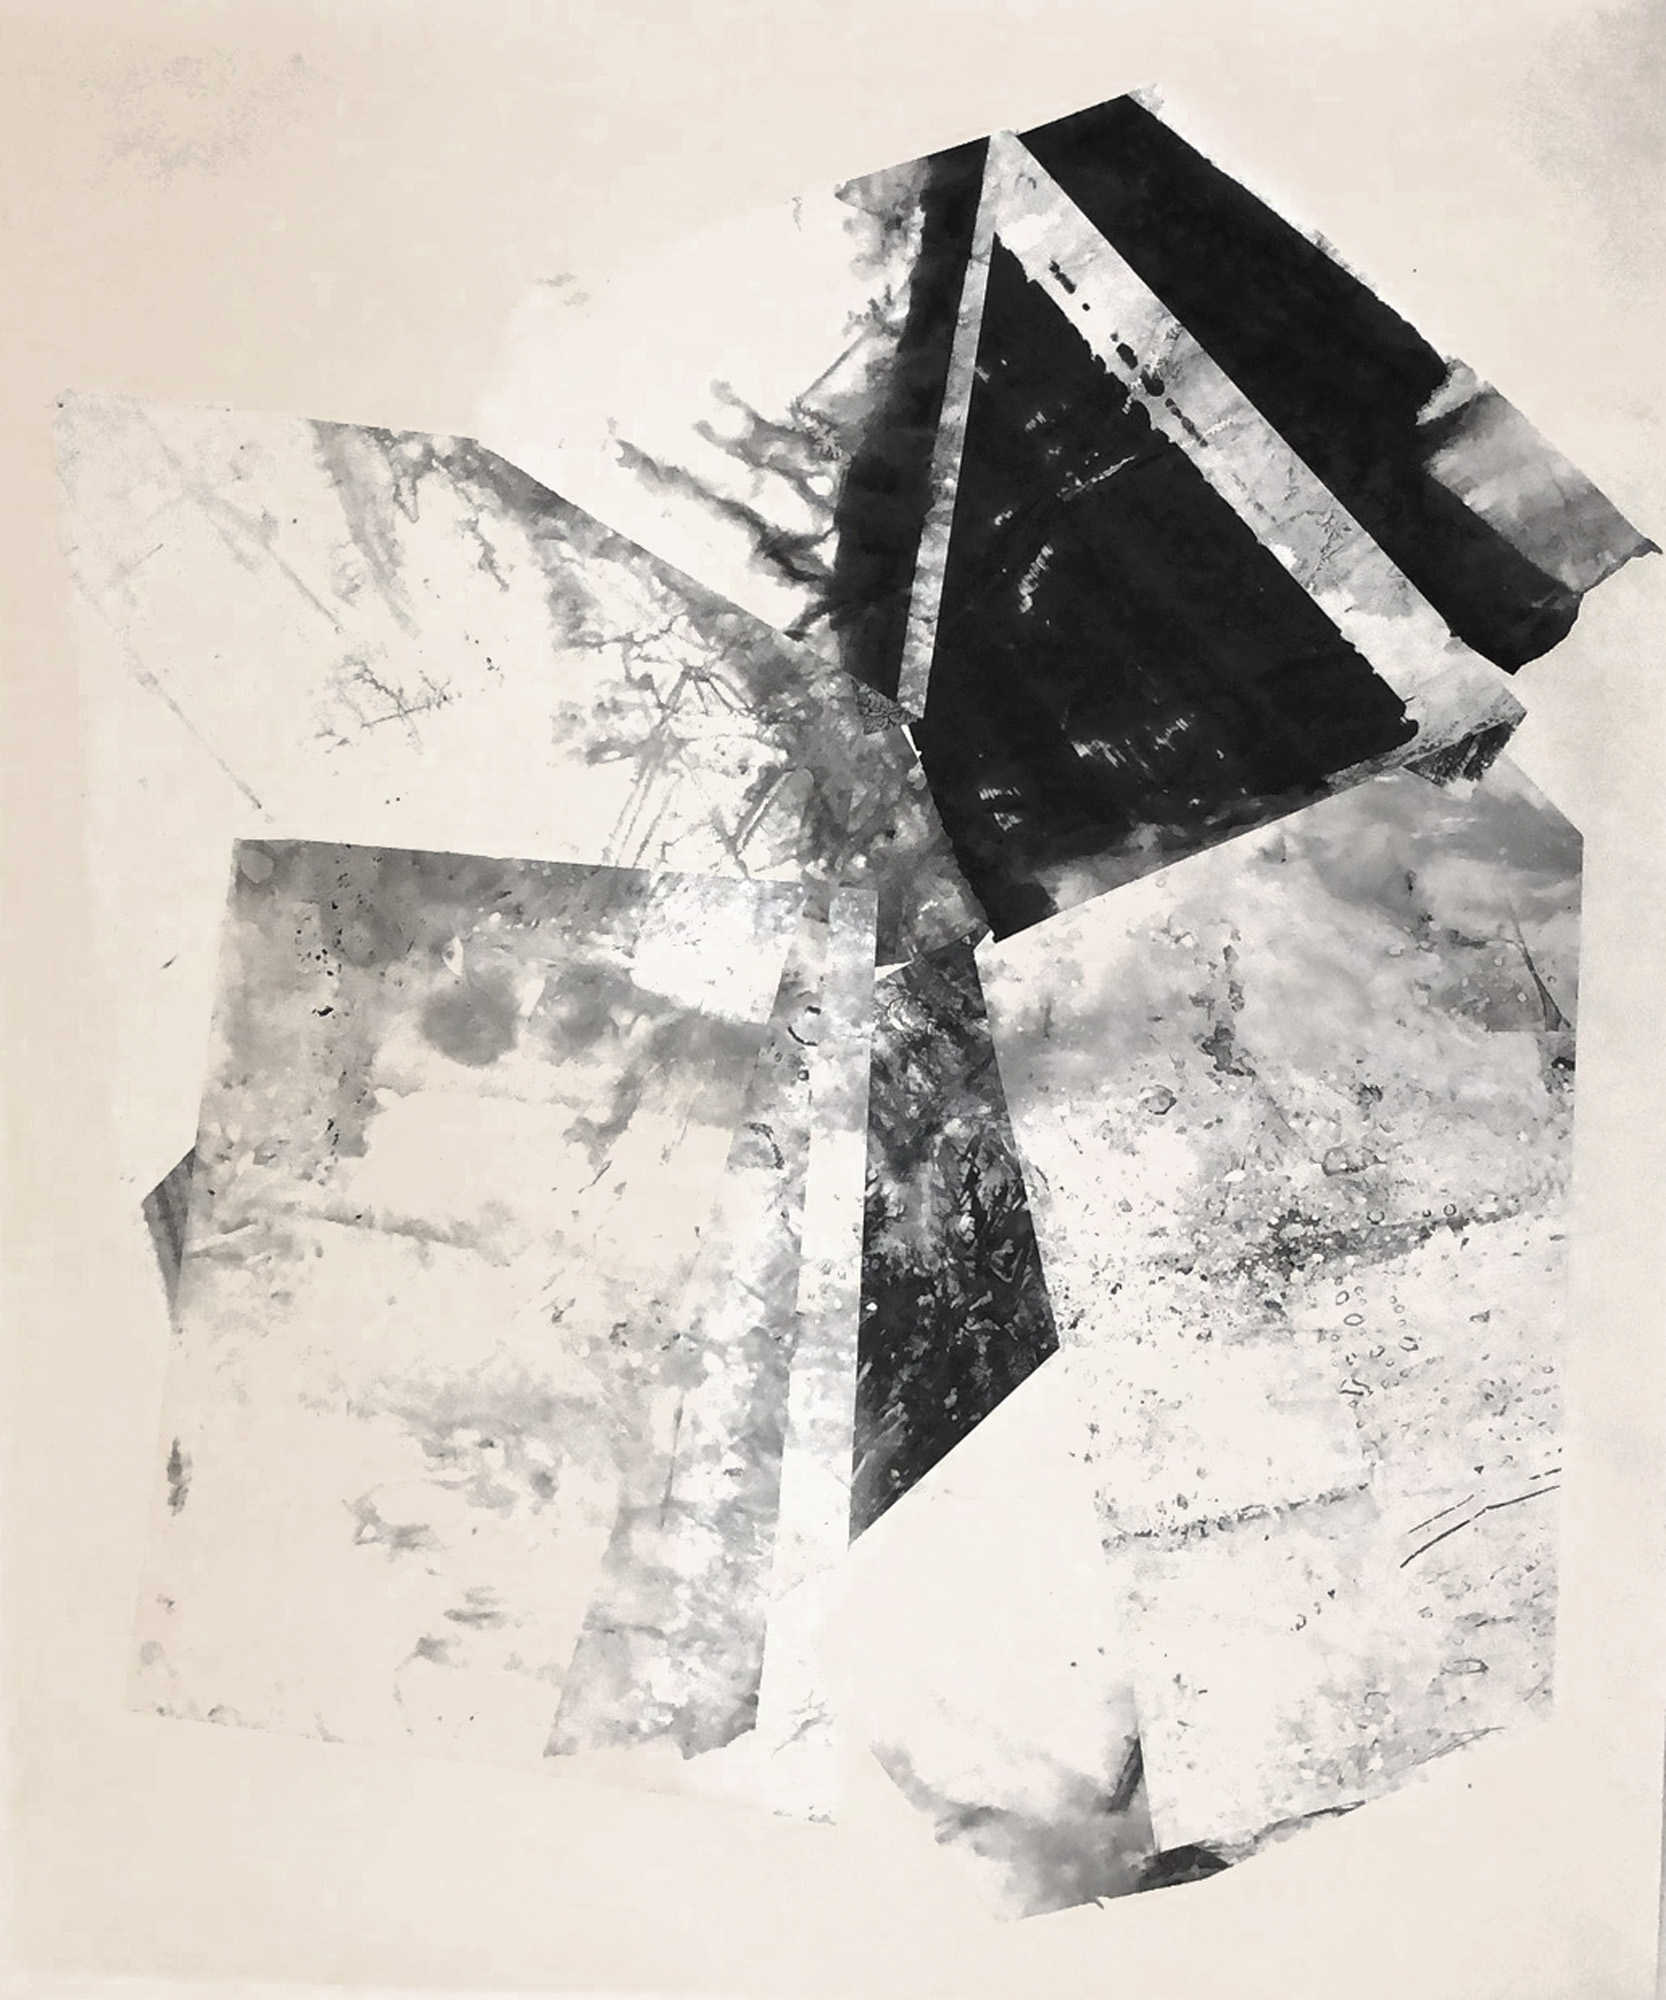 Zheng Chongbin   Untitled 3 , 2018 Ink and acrylic on xuan paper, mounted 129.5 x 106.5 cm